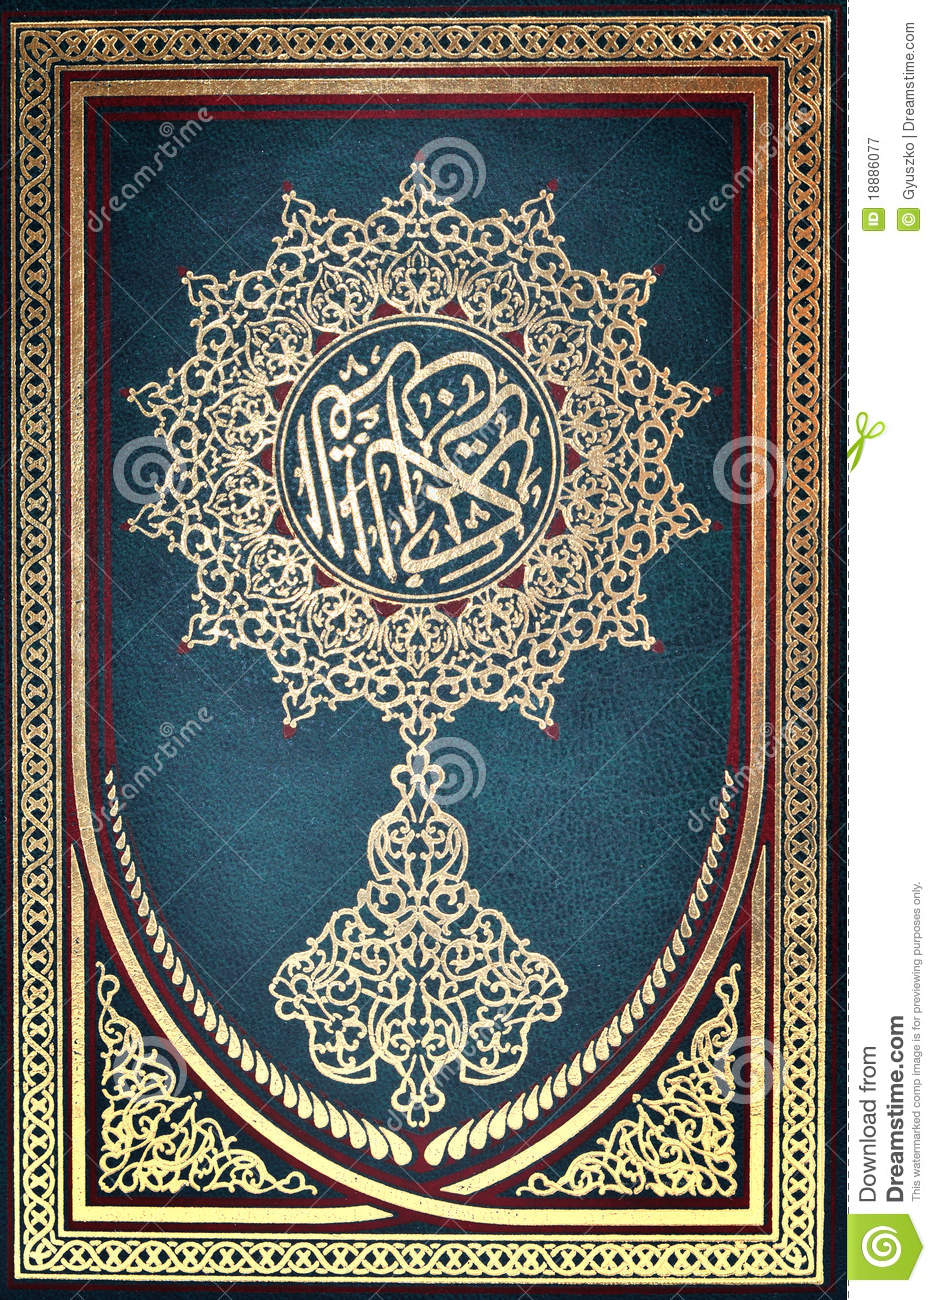 Quran Royalty Free Stock Photography Image